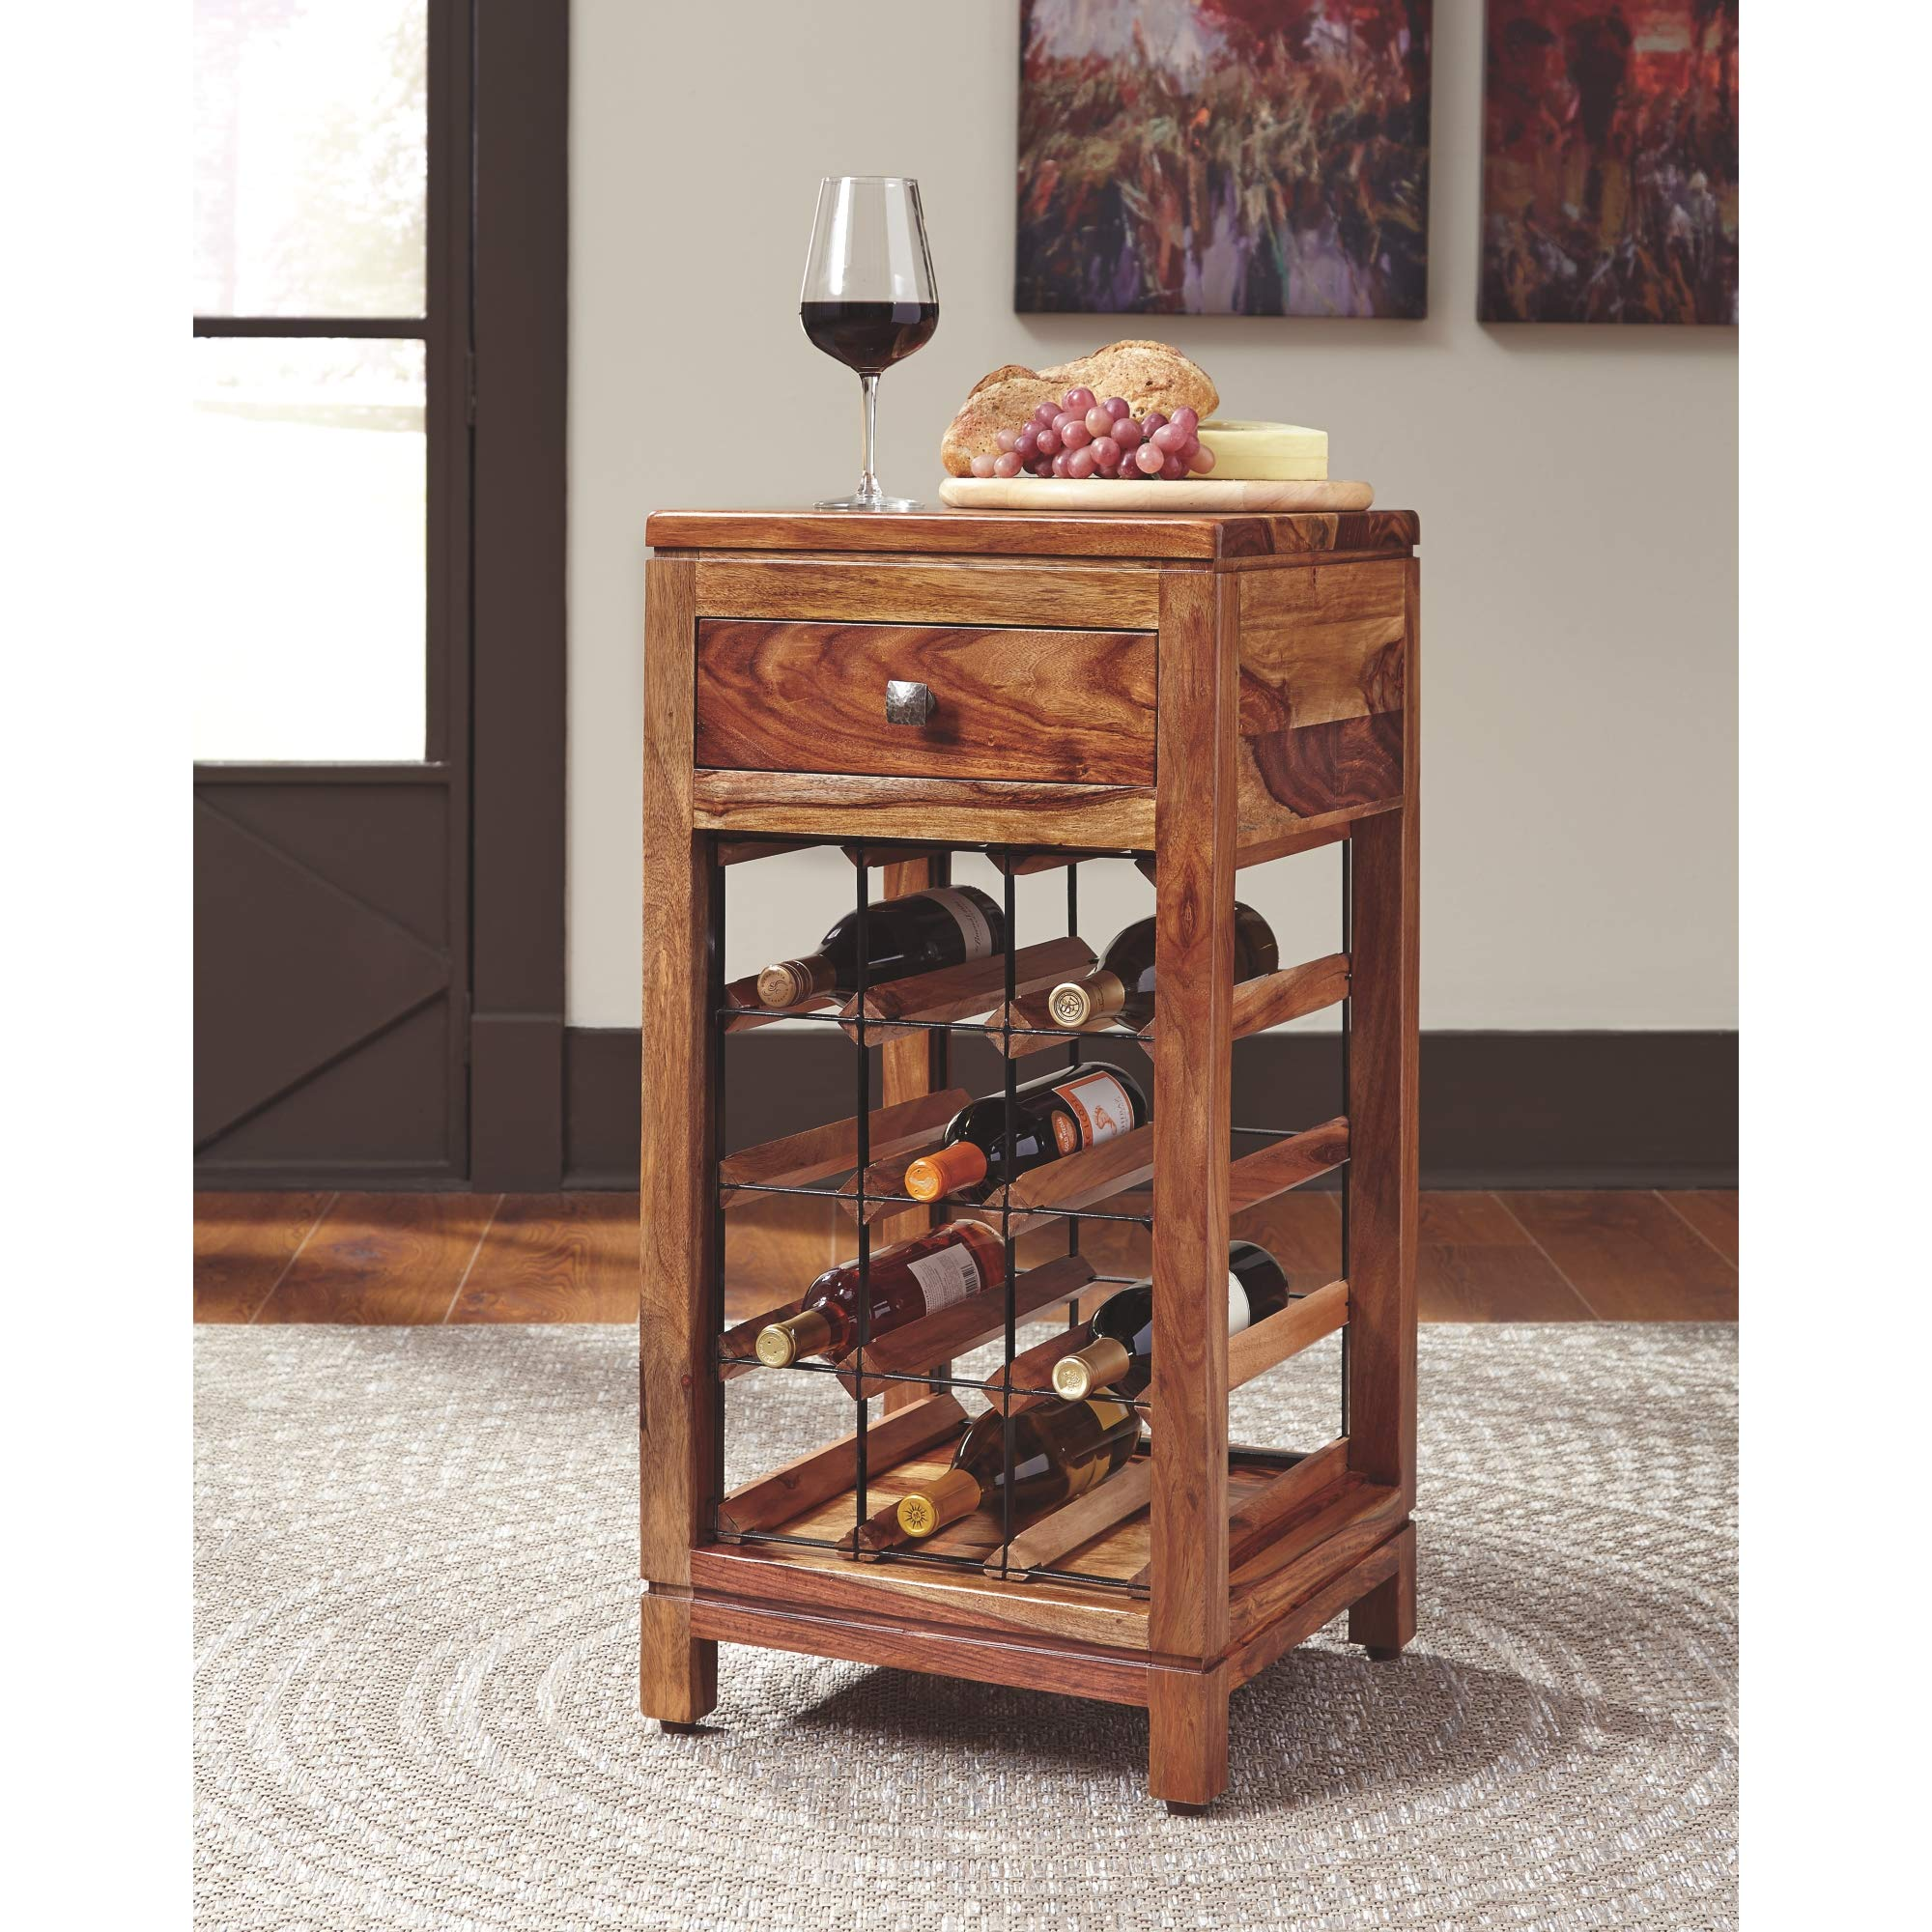 Ashley Furniture Signature Design - Abbonto Wine Cabinet - Casual - Warm Brown Finish by Signature Design by Ashley (Image #2)